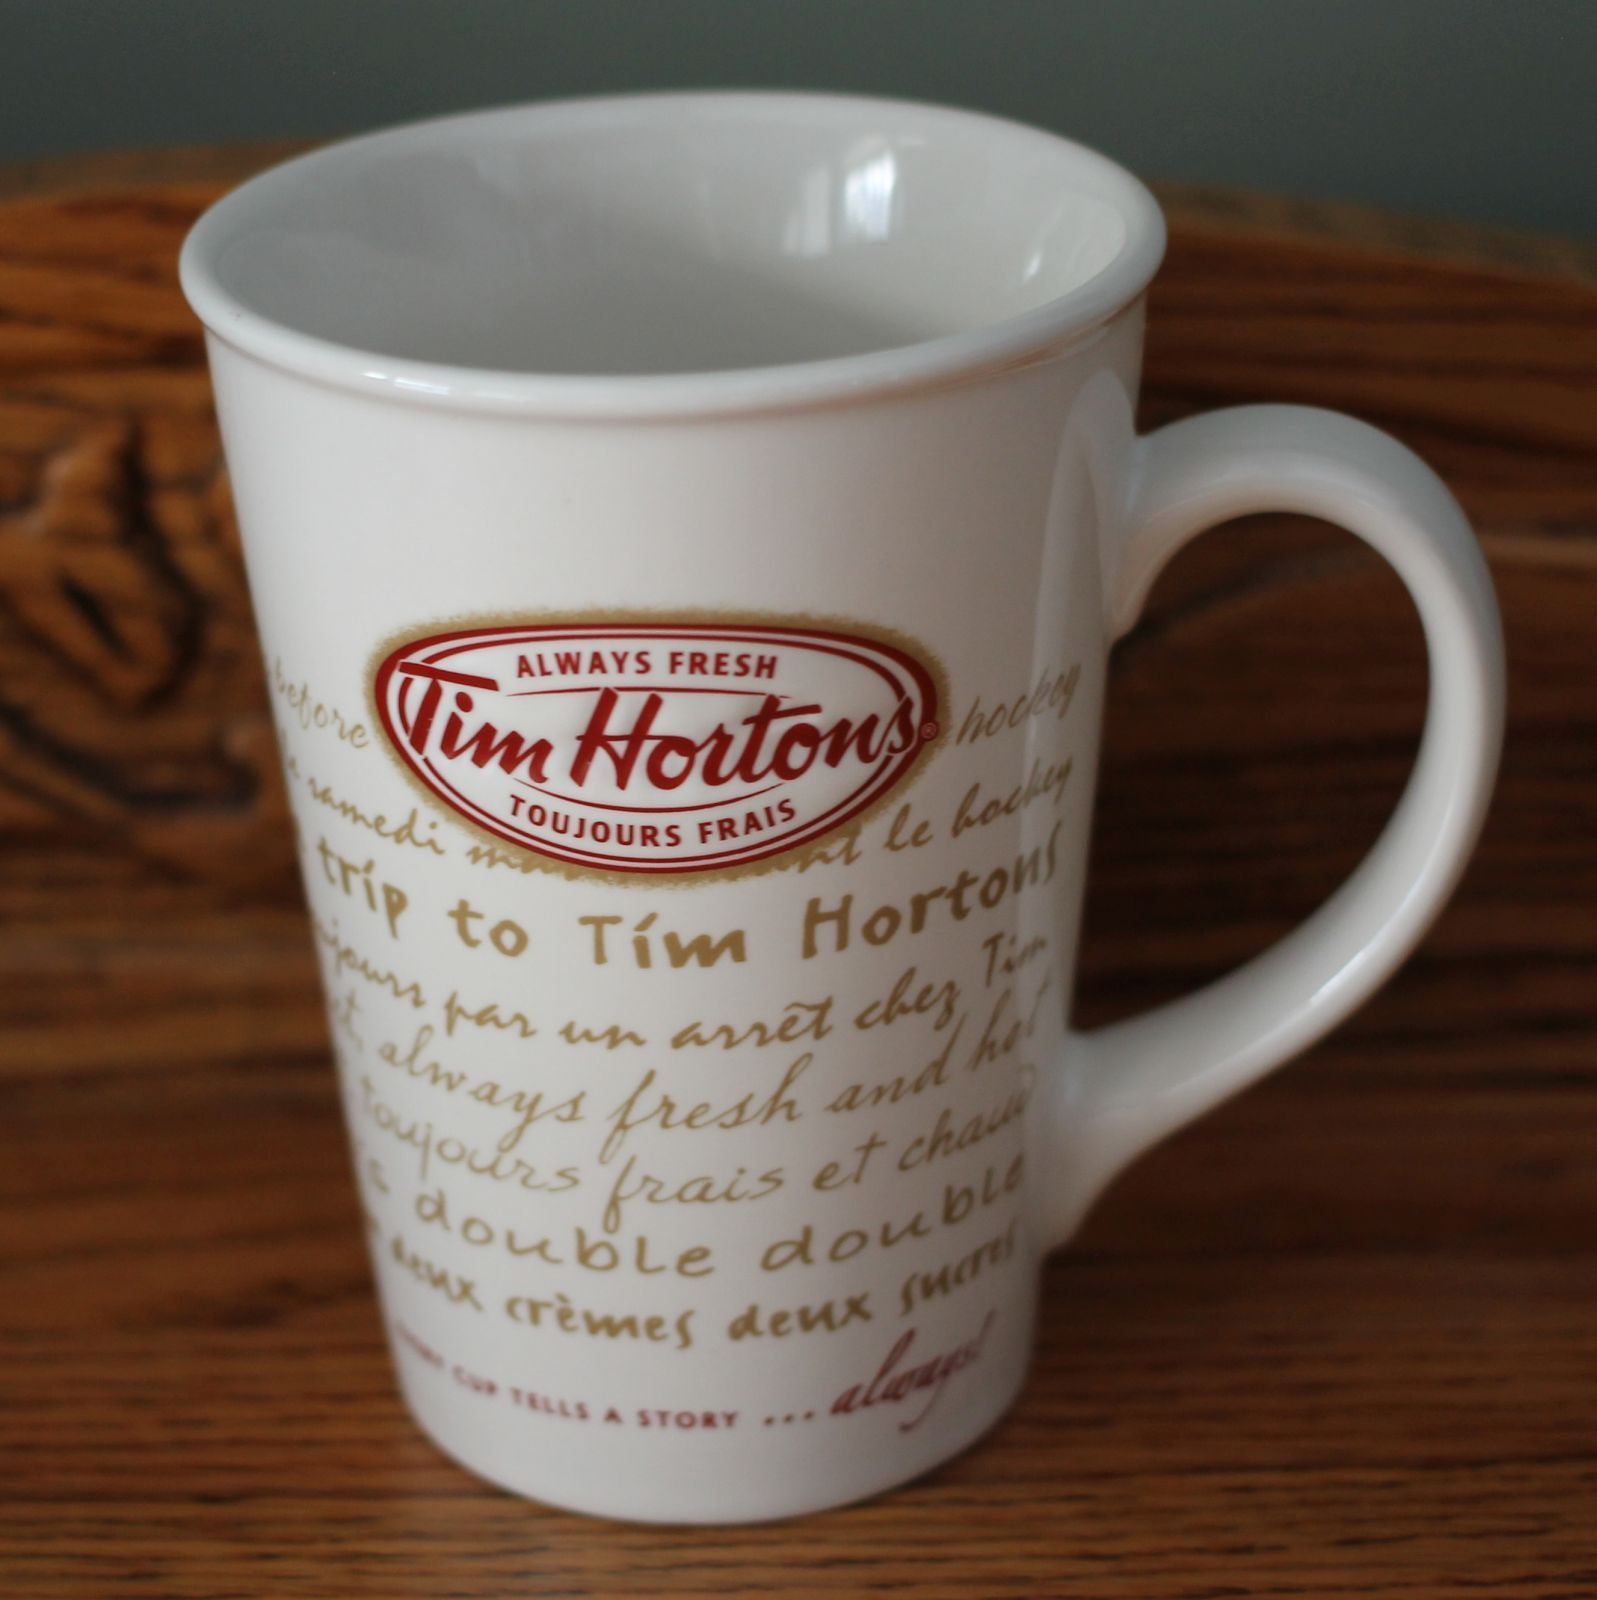 Pin by Caper Crafts on Tim Hortons Tim hortons coffee